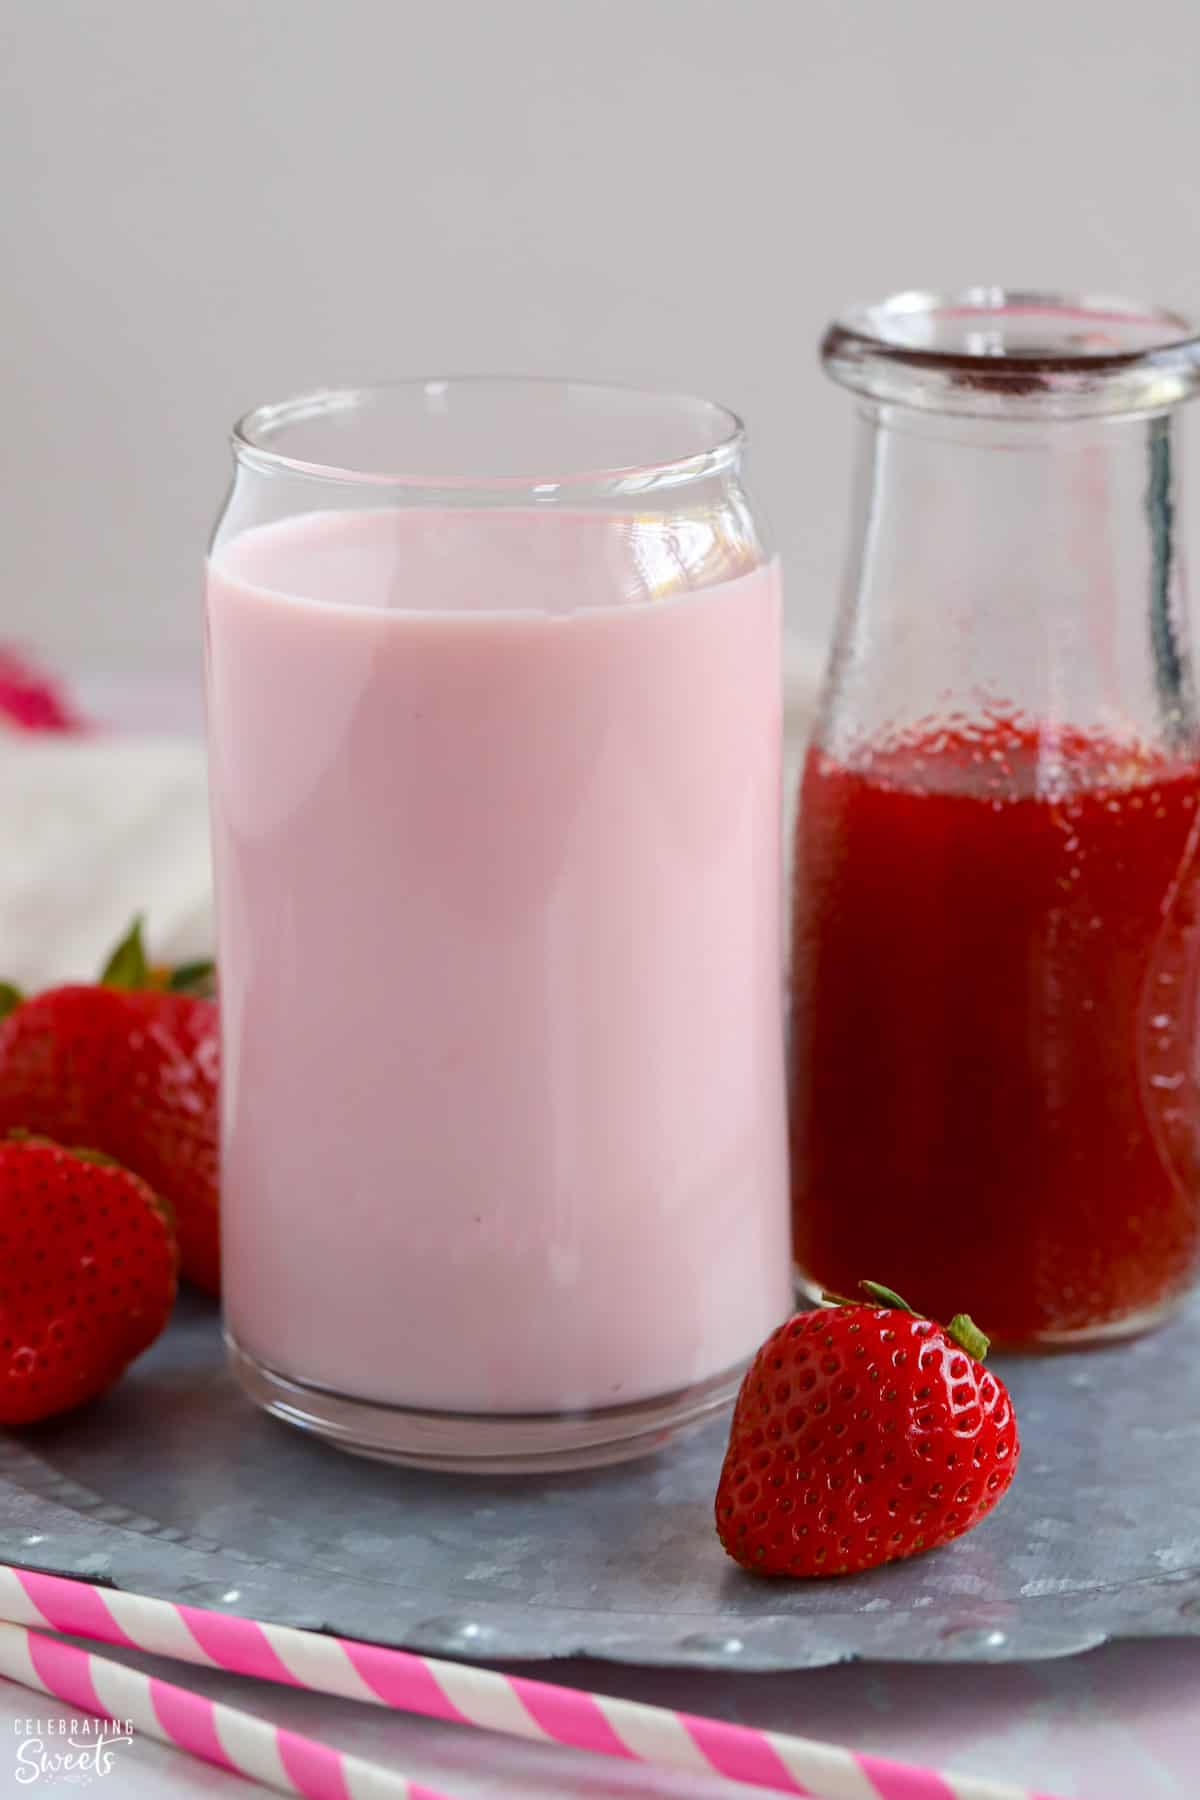 Glass of strawberry milk and a carafe of strawberry syrup.